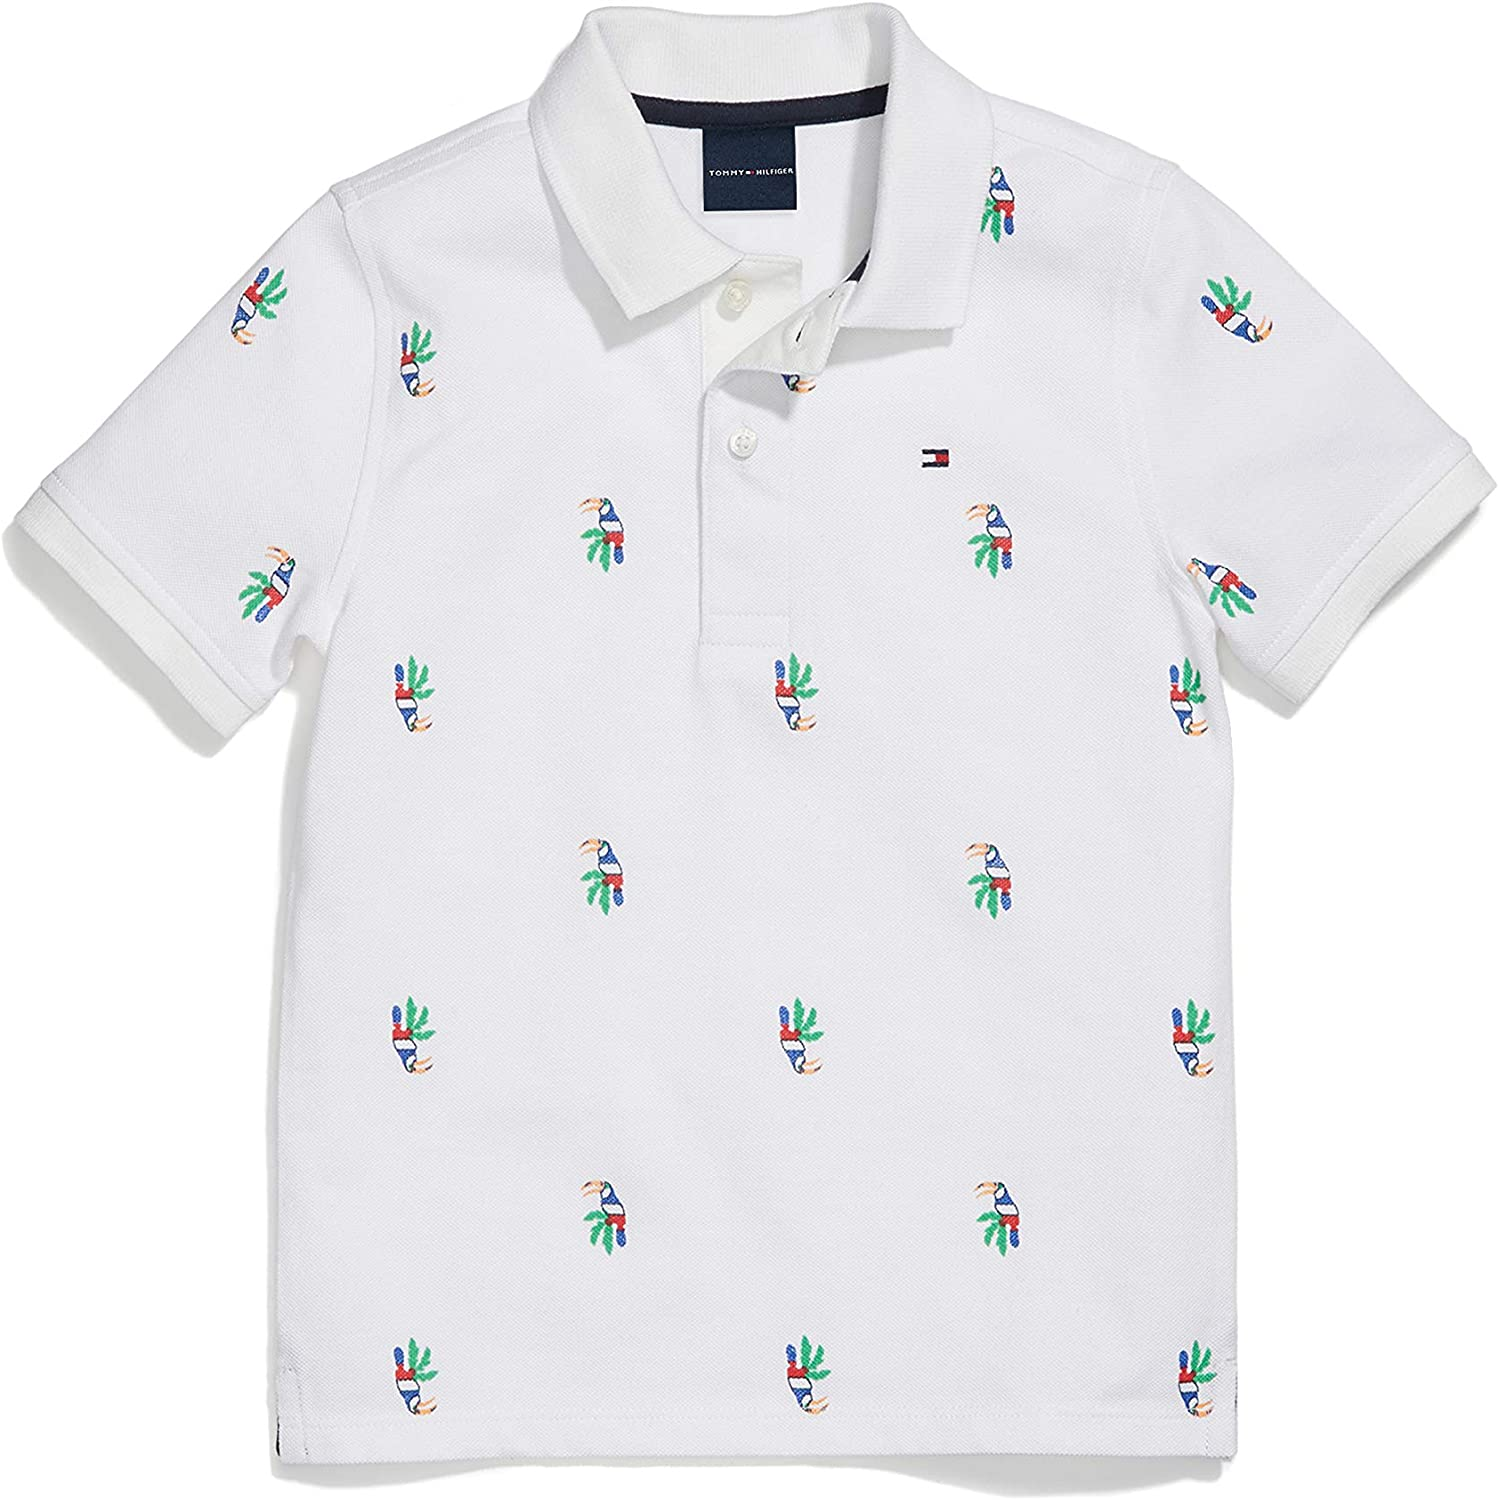 Tommy Hilfiger Boys Adaptive Polo Shirt with Magnetic Buttons